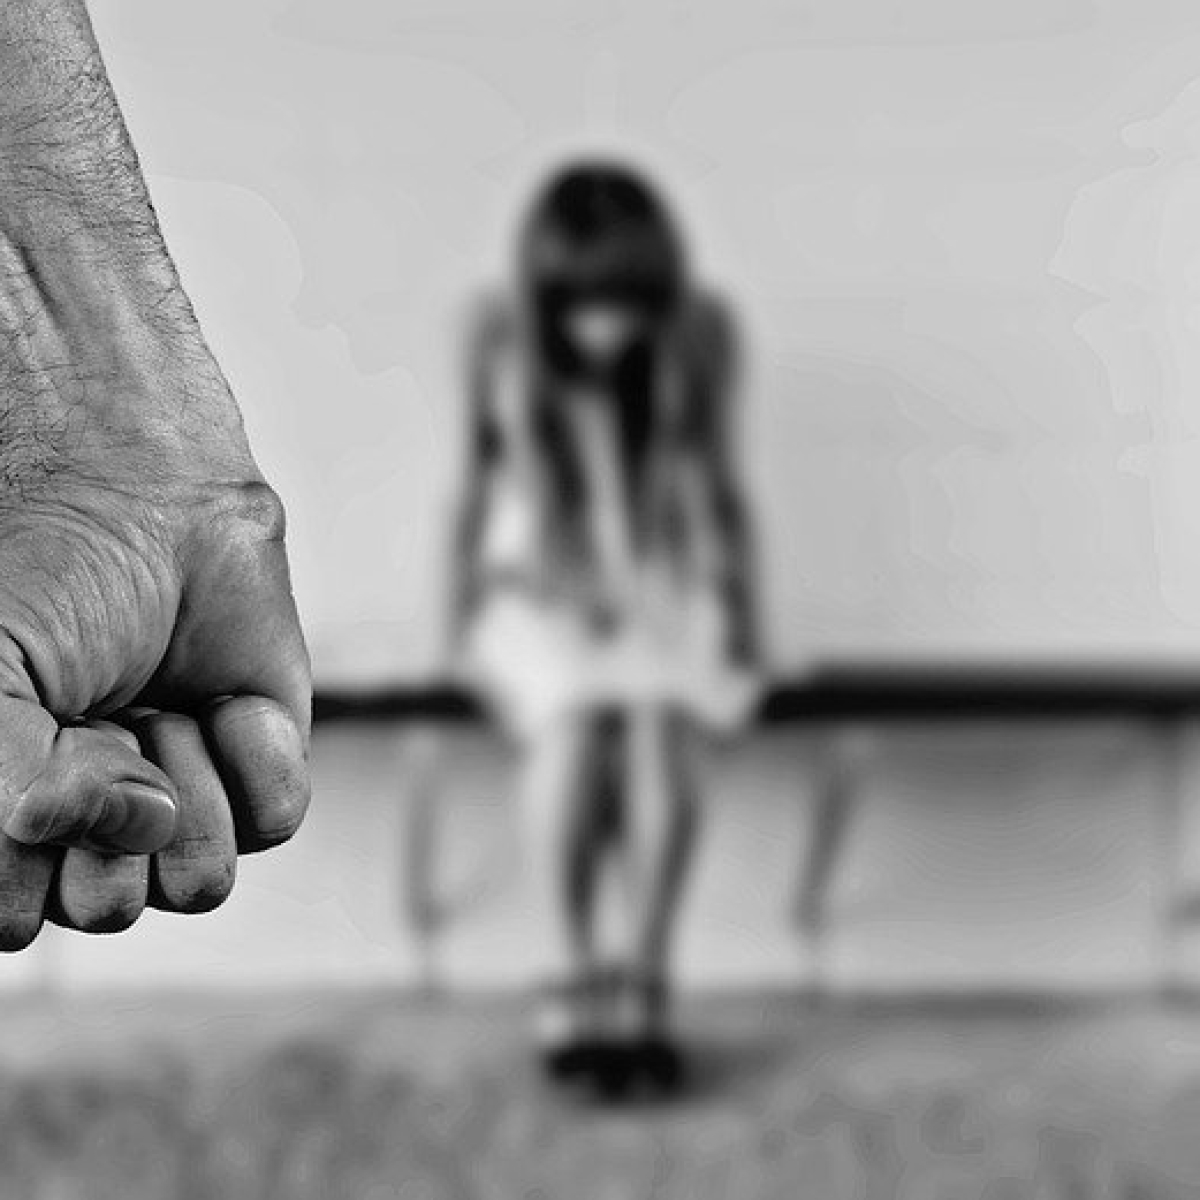 Mumbai: 36-year-old booked for raping NGO worker